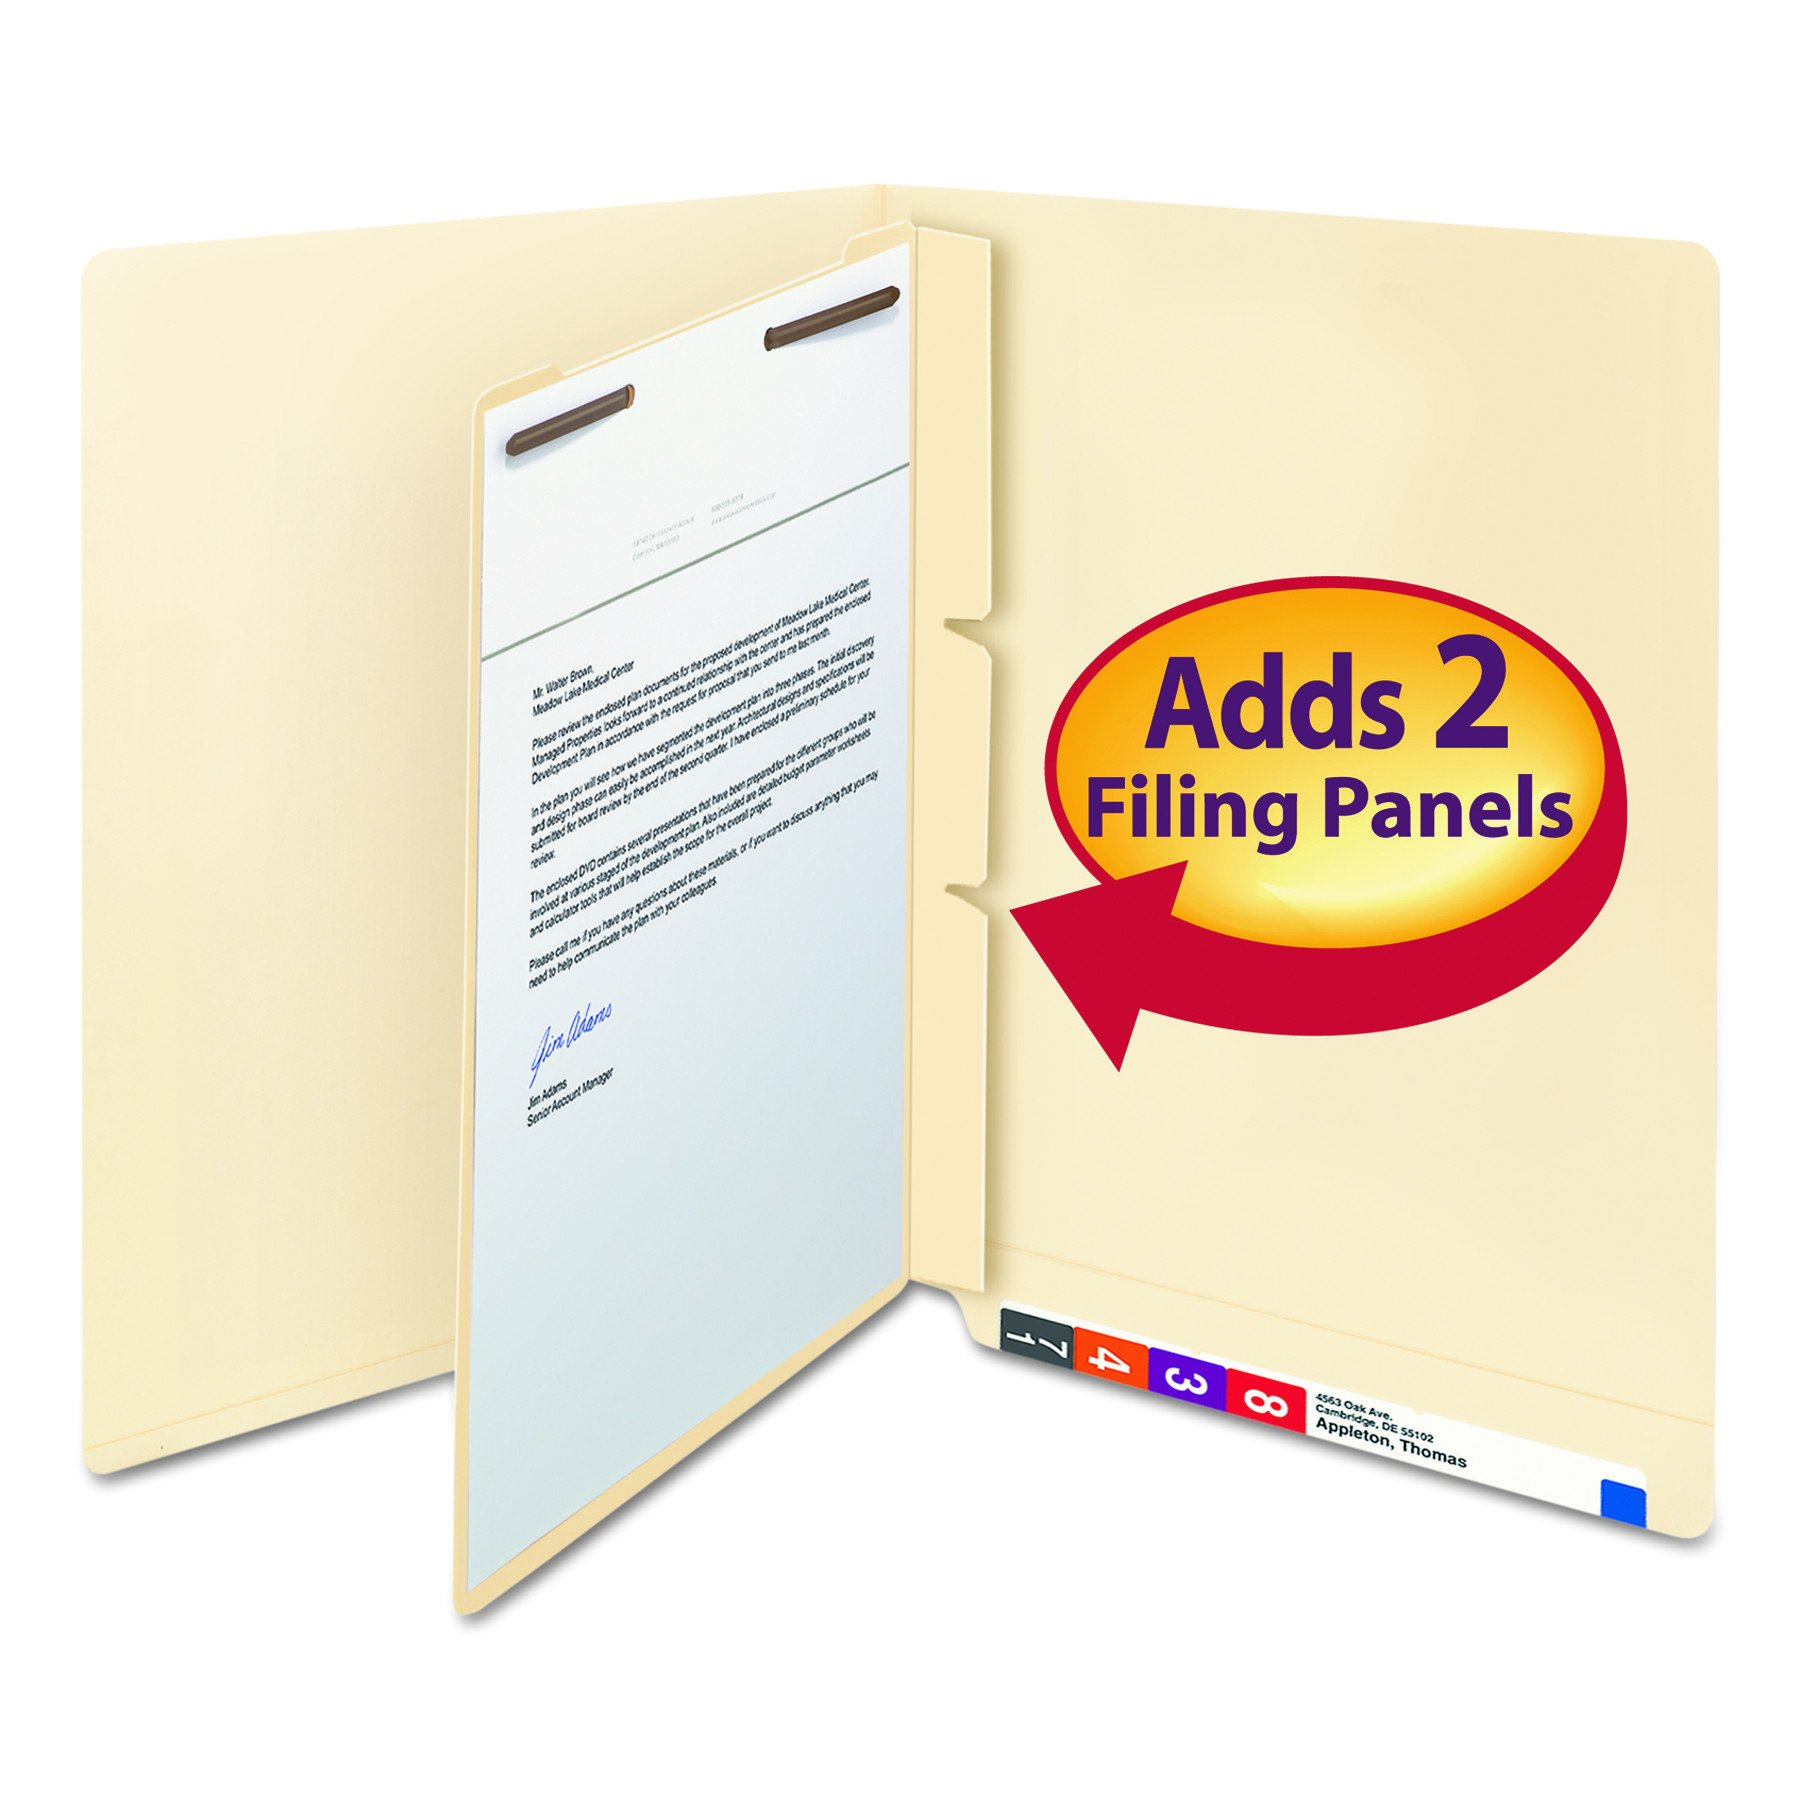 Smead 68027 Manila Self-Adhesive End/Top Tab Folder Dividers, 2-Sections, Letter (Box of 100) by Smead